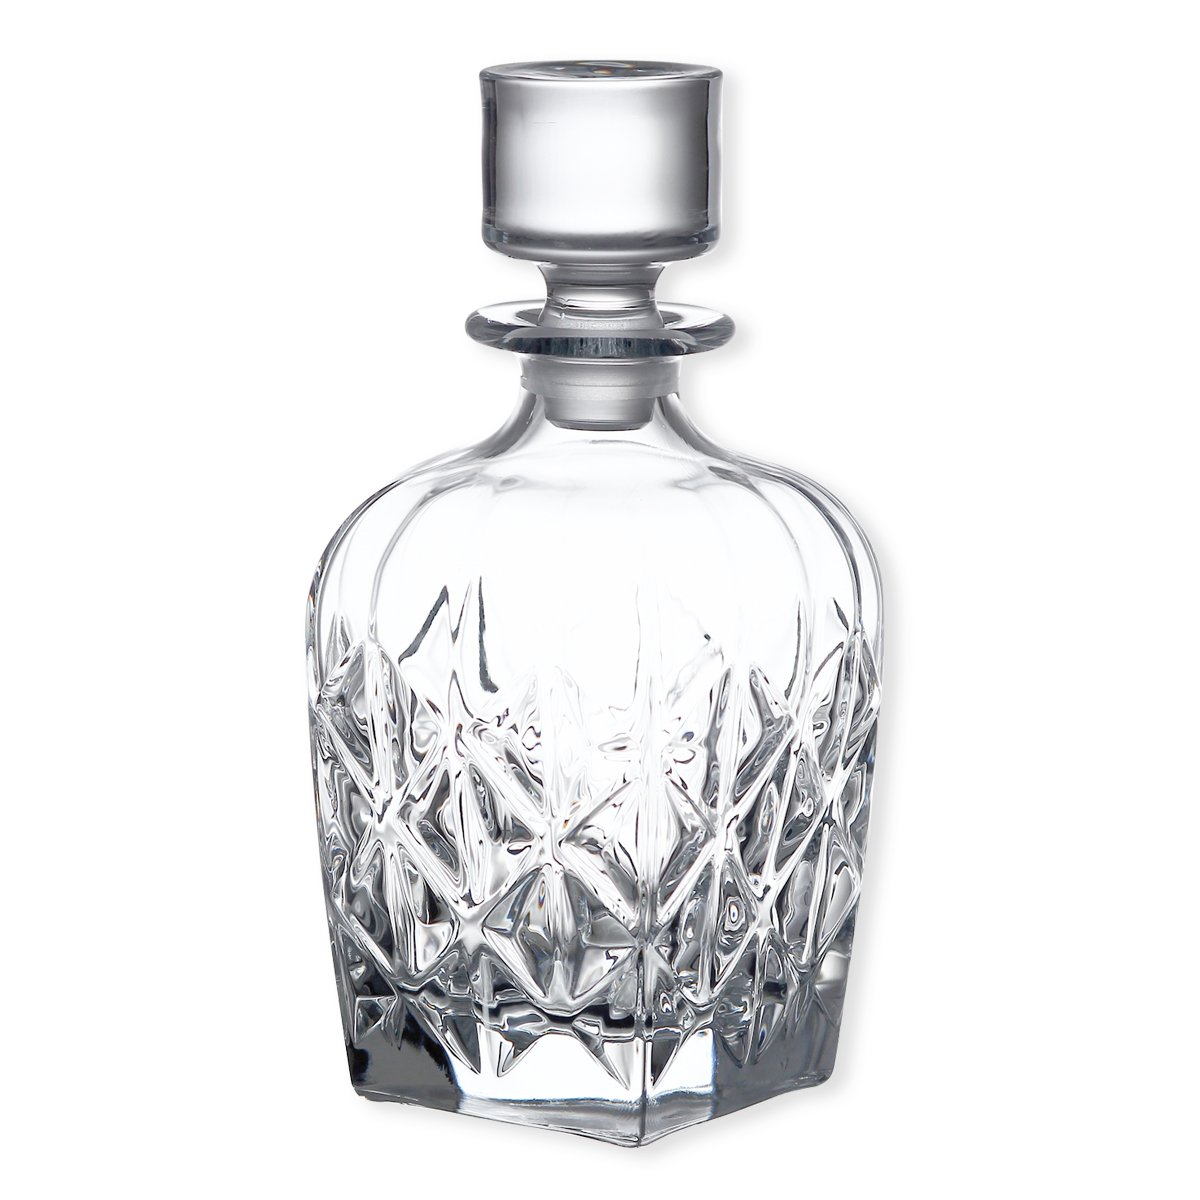 RCR Enigma Maison Italian Crystal Whisky Decanter 86cl (could also be used as a wine decanter) RCR Crystal 515290